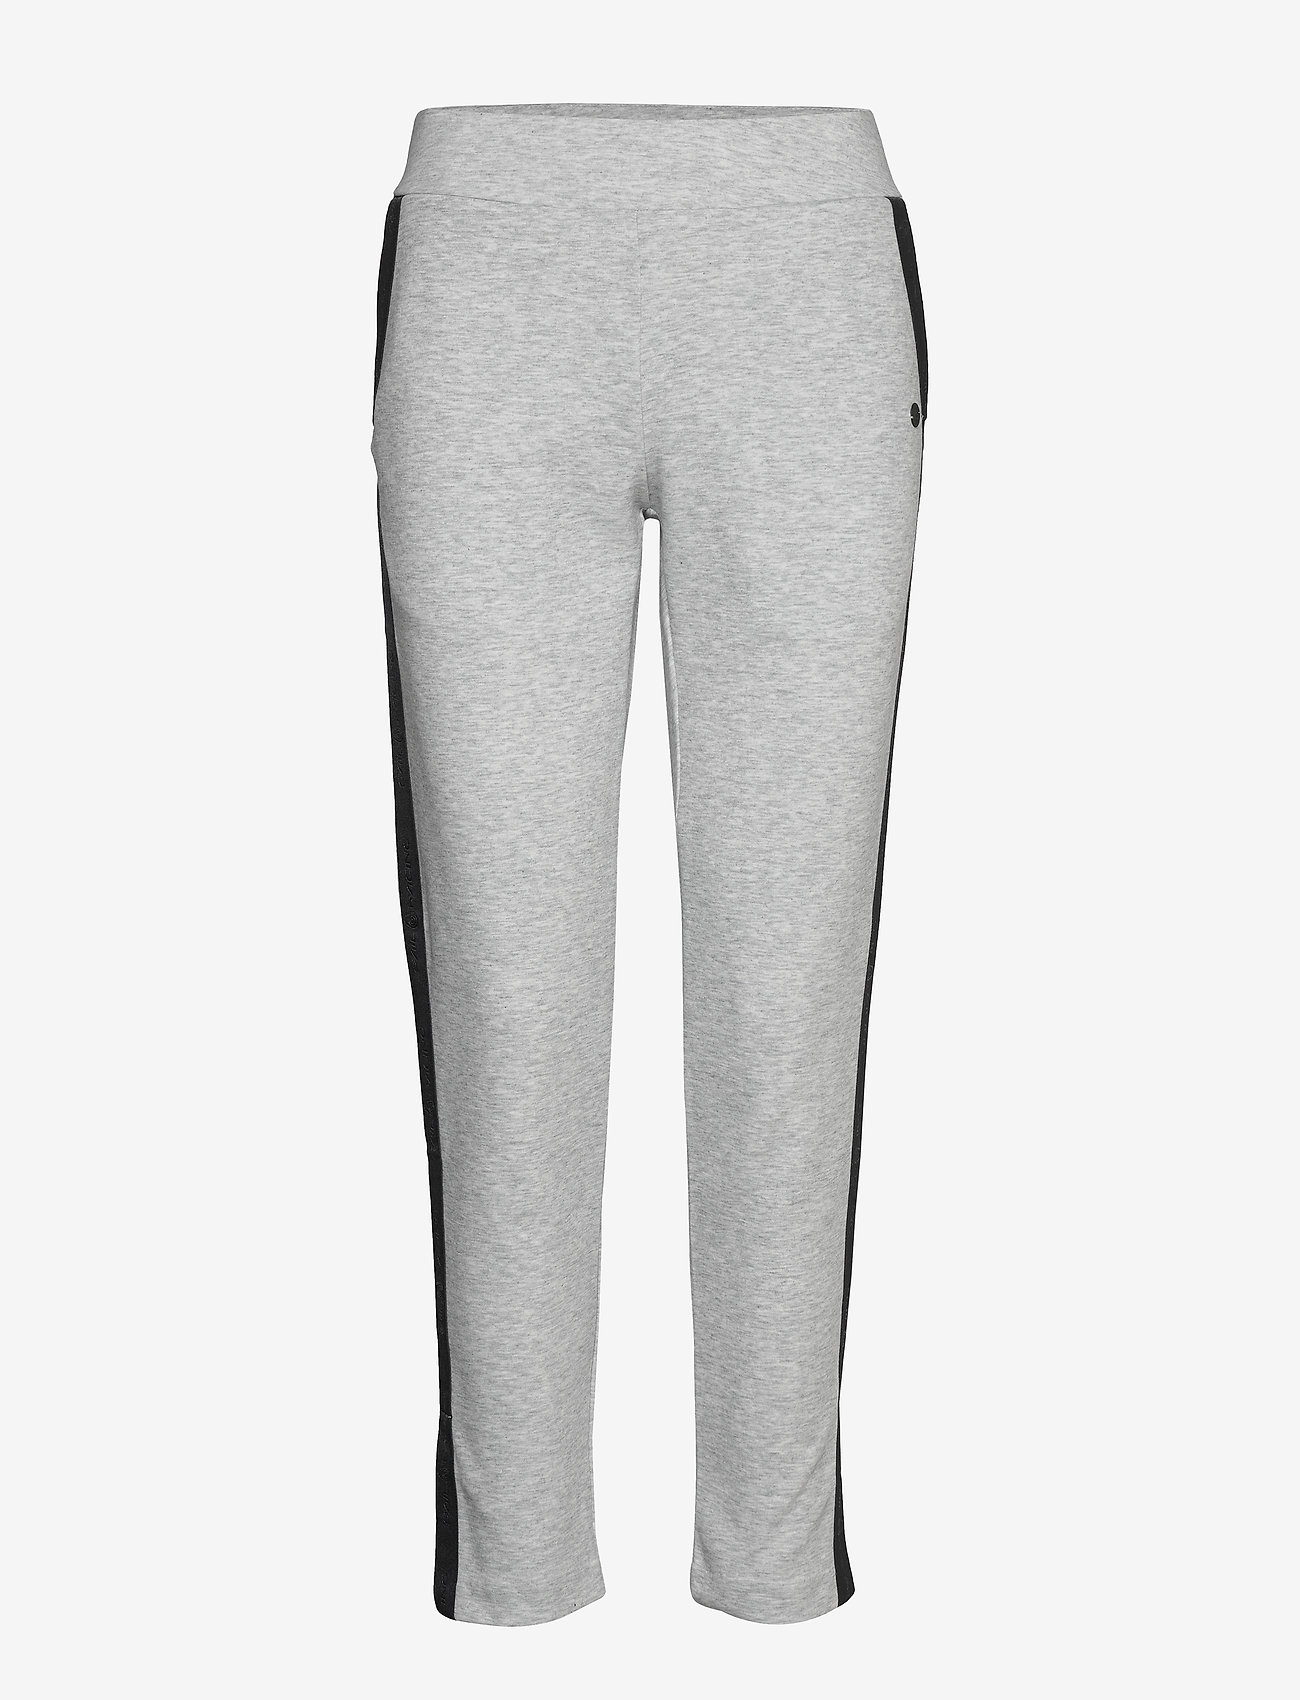 Sail Racing - W RACE PANT - pants - grey melange - 0